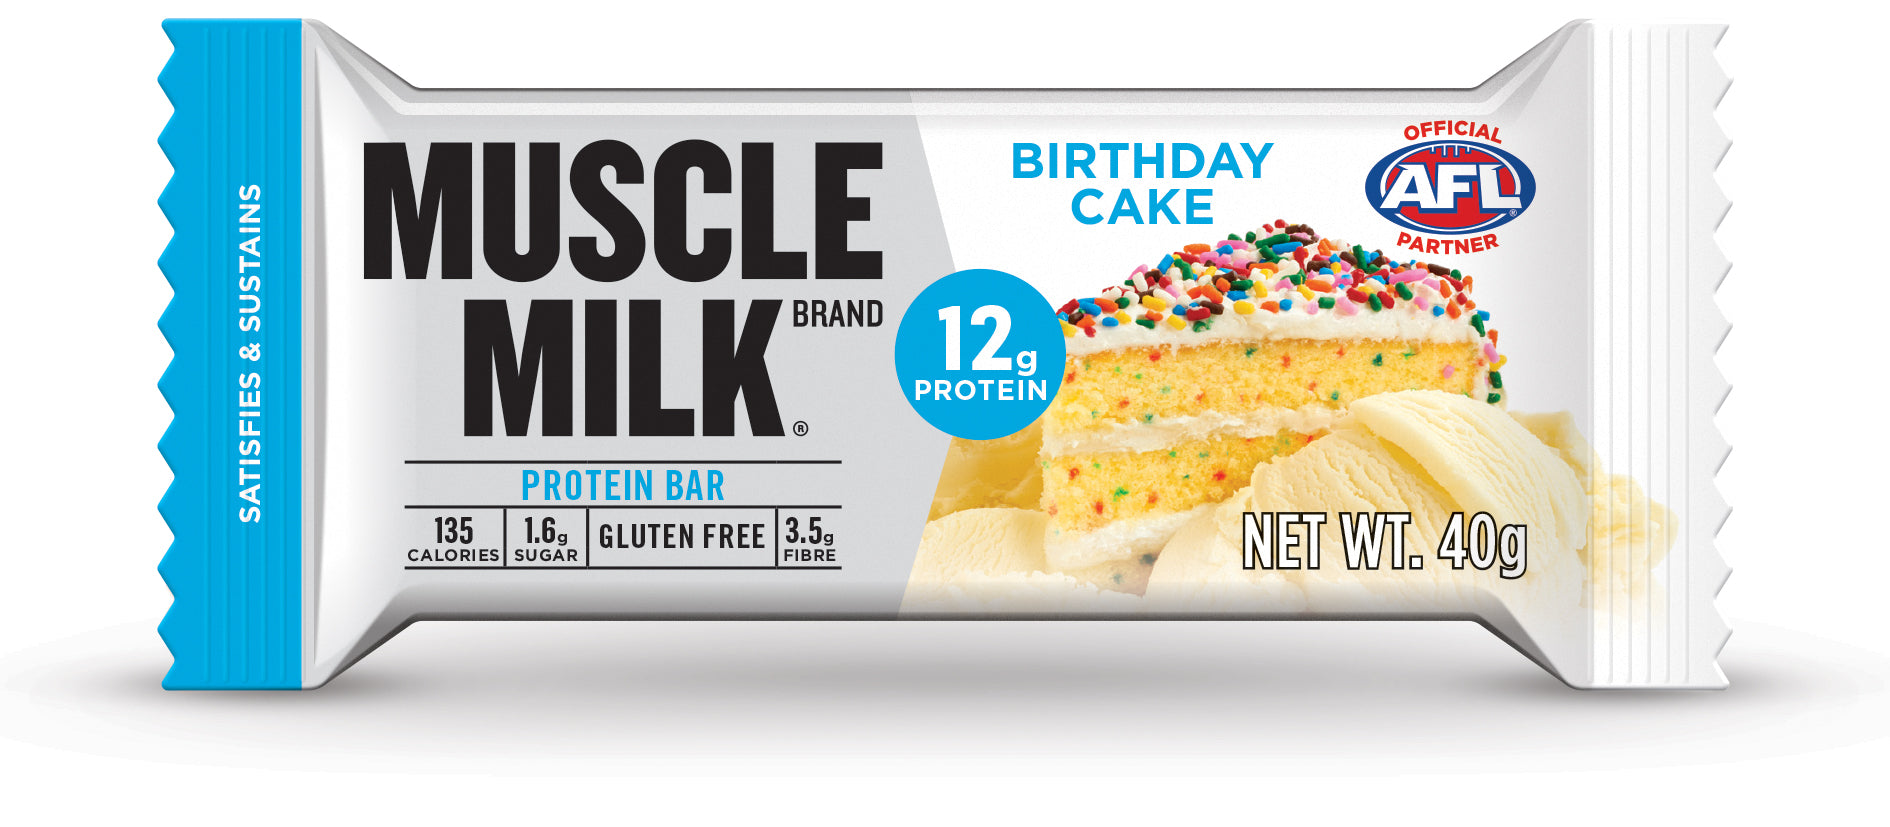 MUSCLE MILKR 12g Protein Bar Birthday Cake